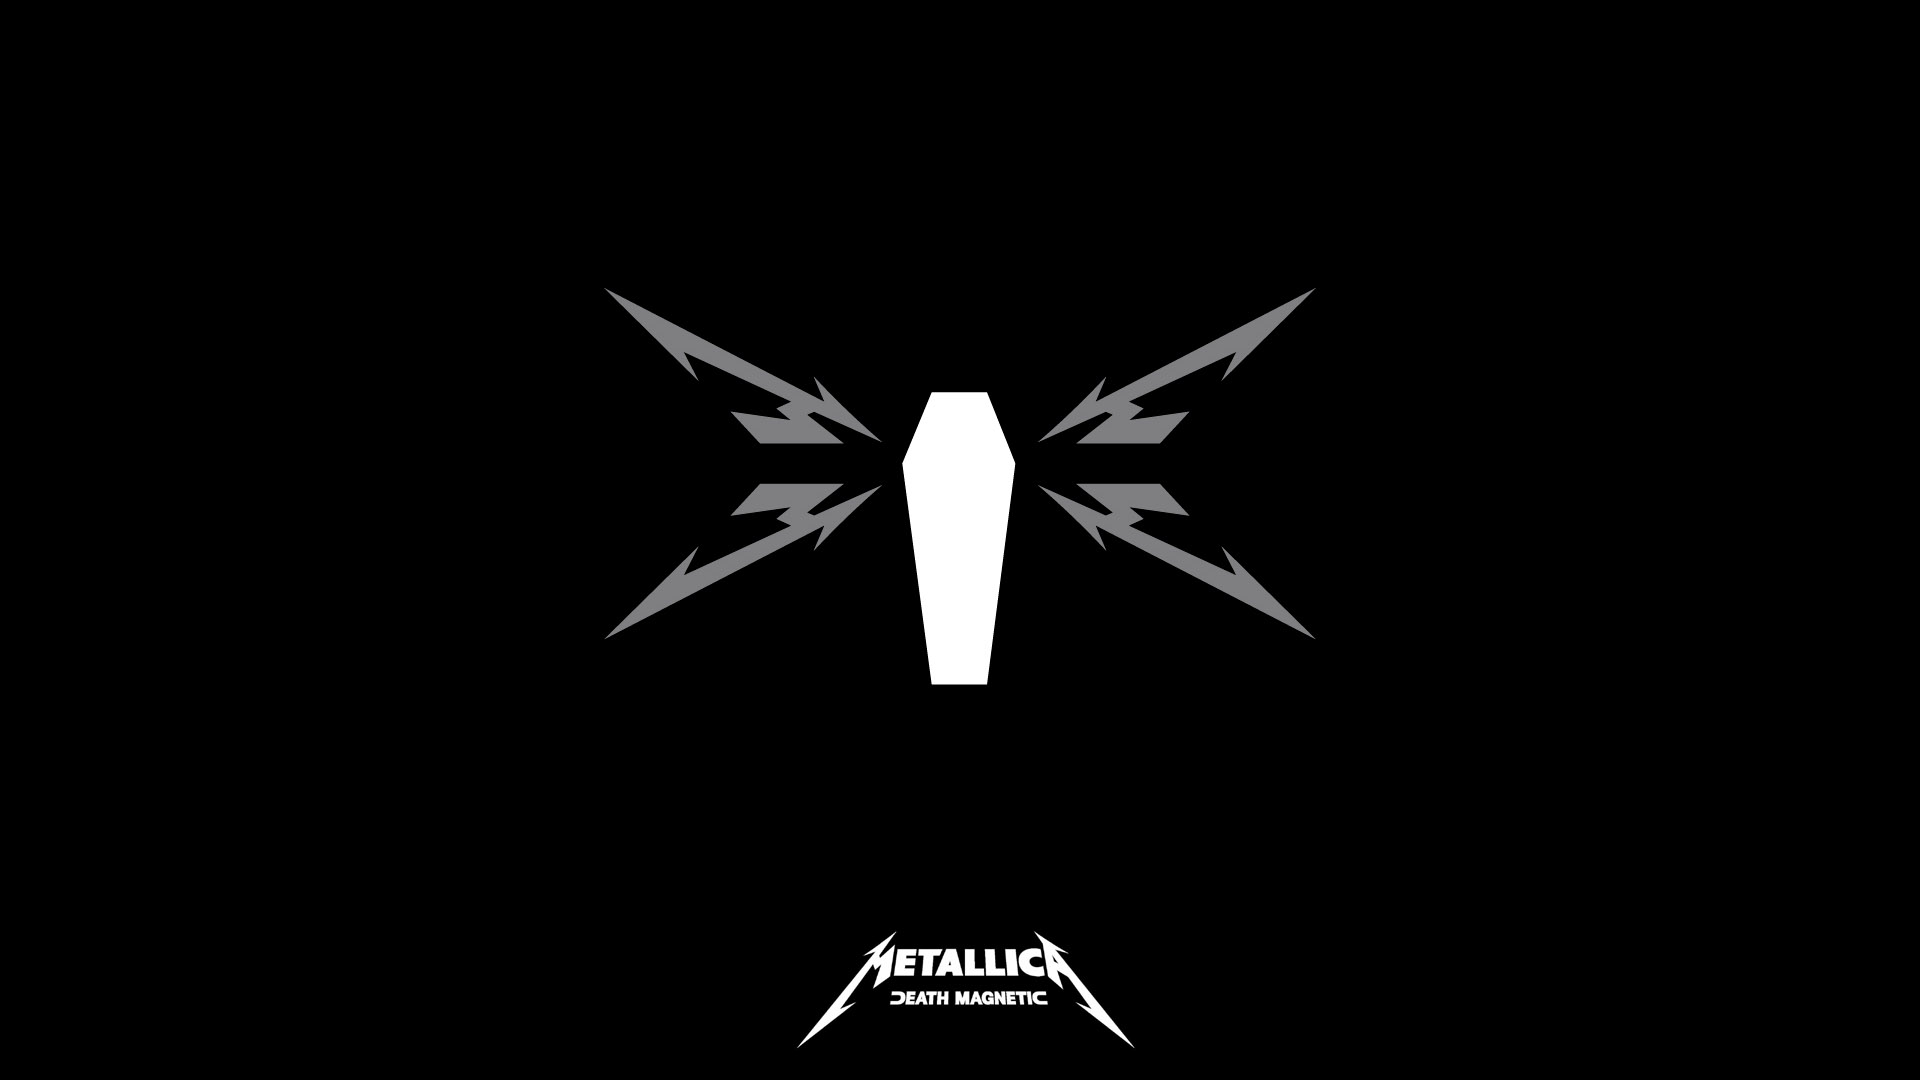 Death Magnetic 1920x1080 HD Image Music And Bands Metallica